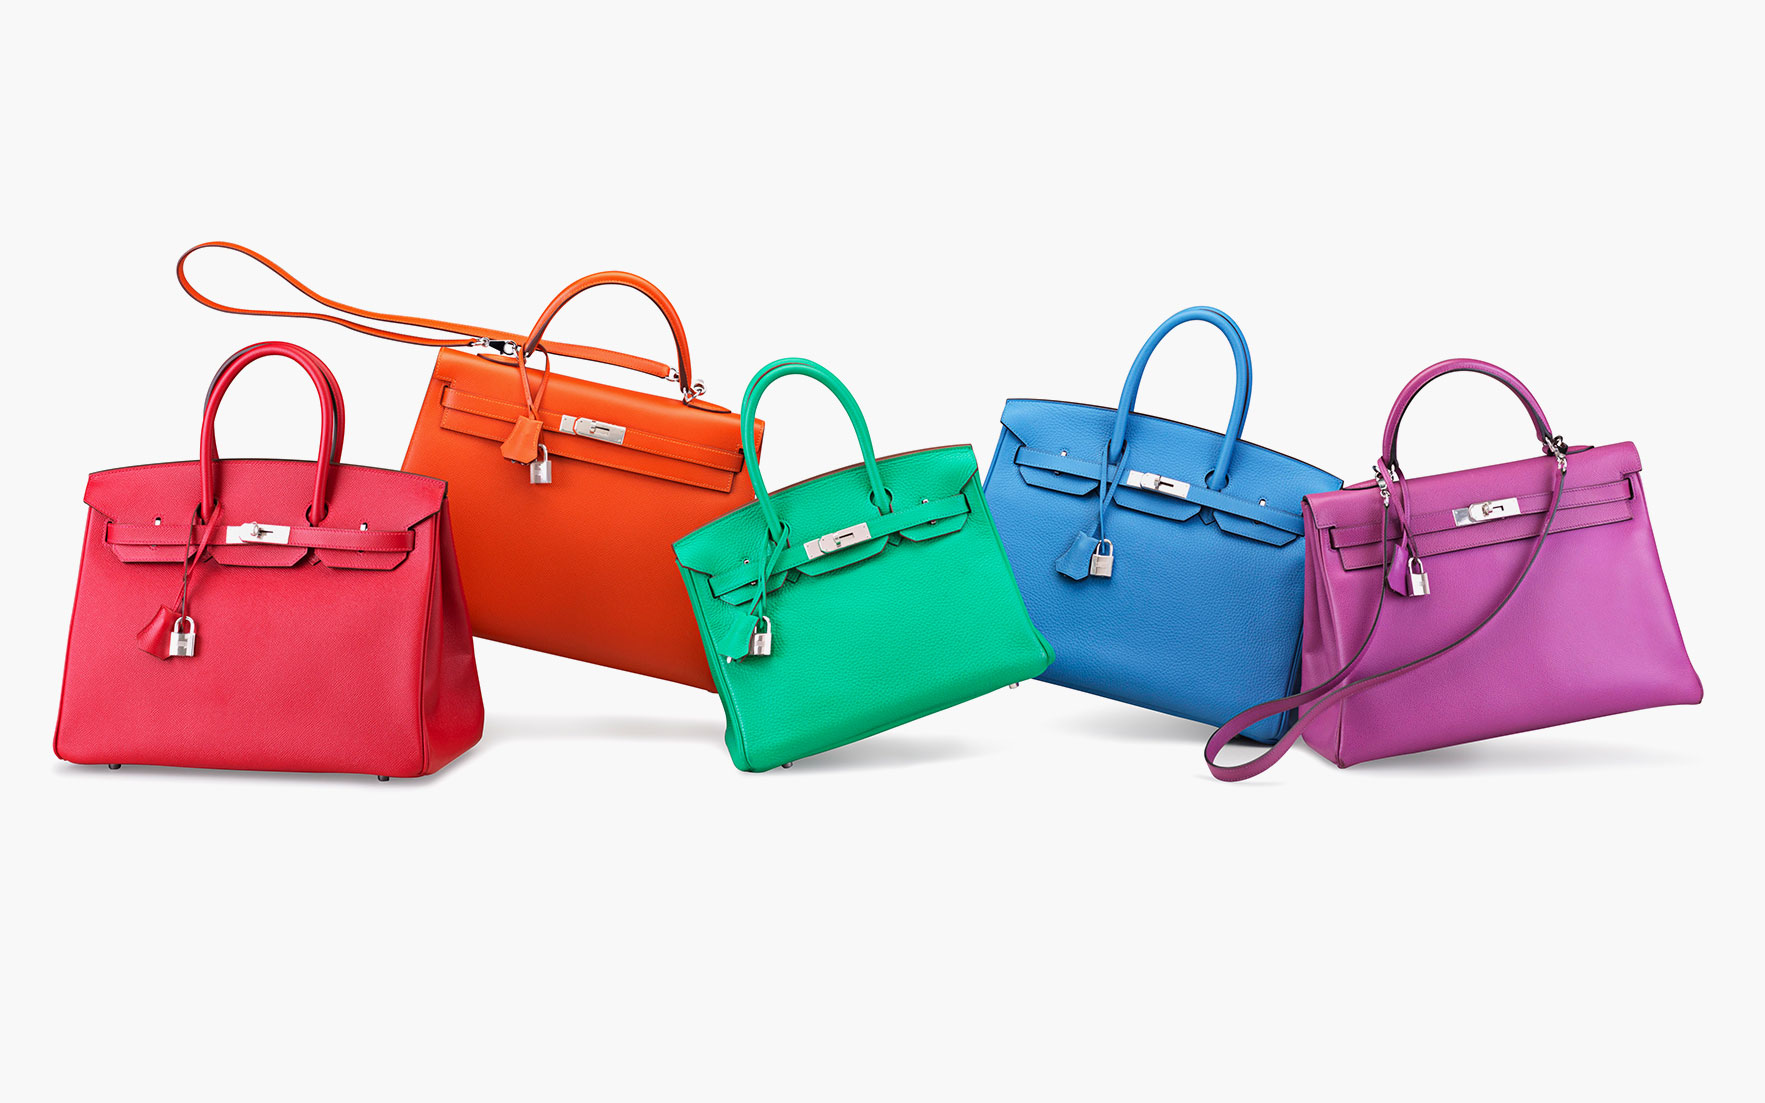 Hermès handbags for every budget